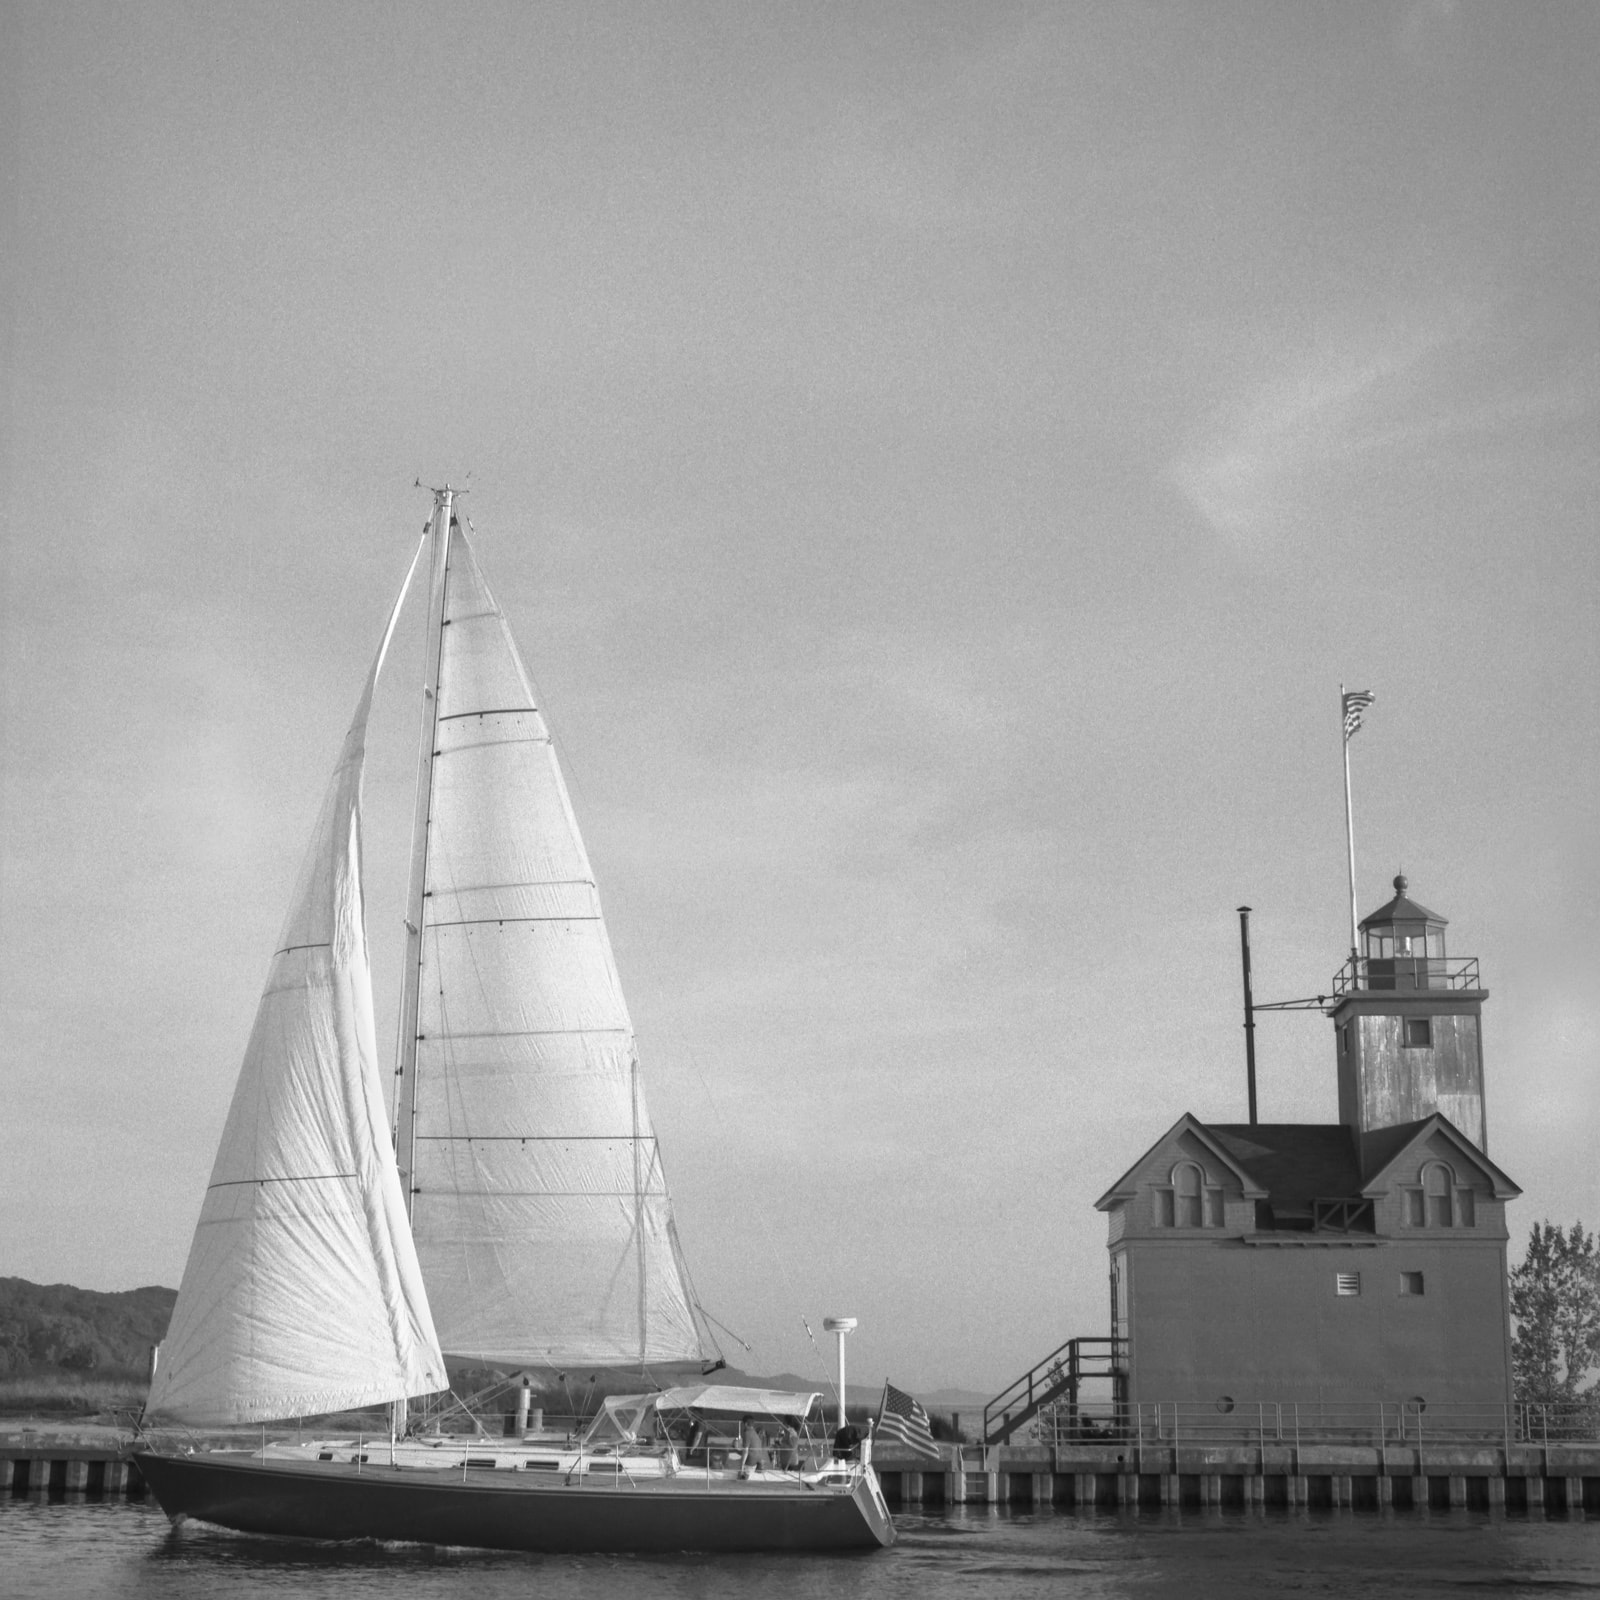 A sailboat and Big Red Lighthouse